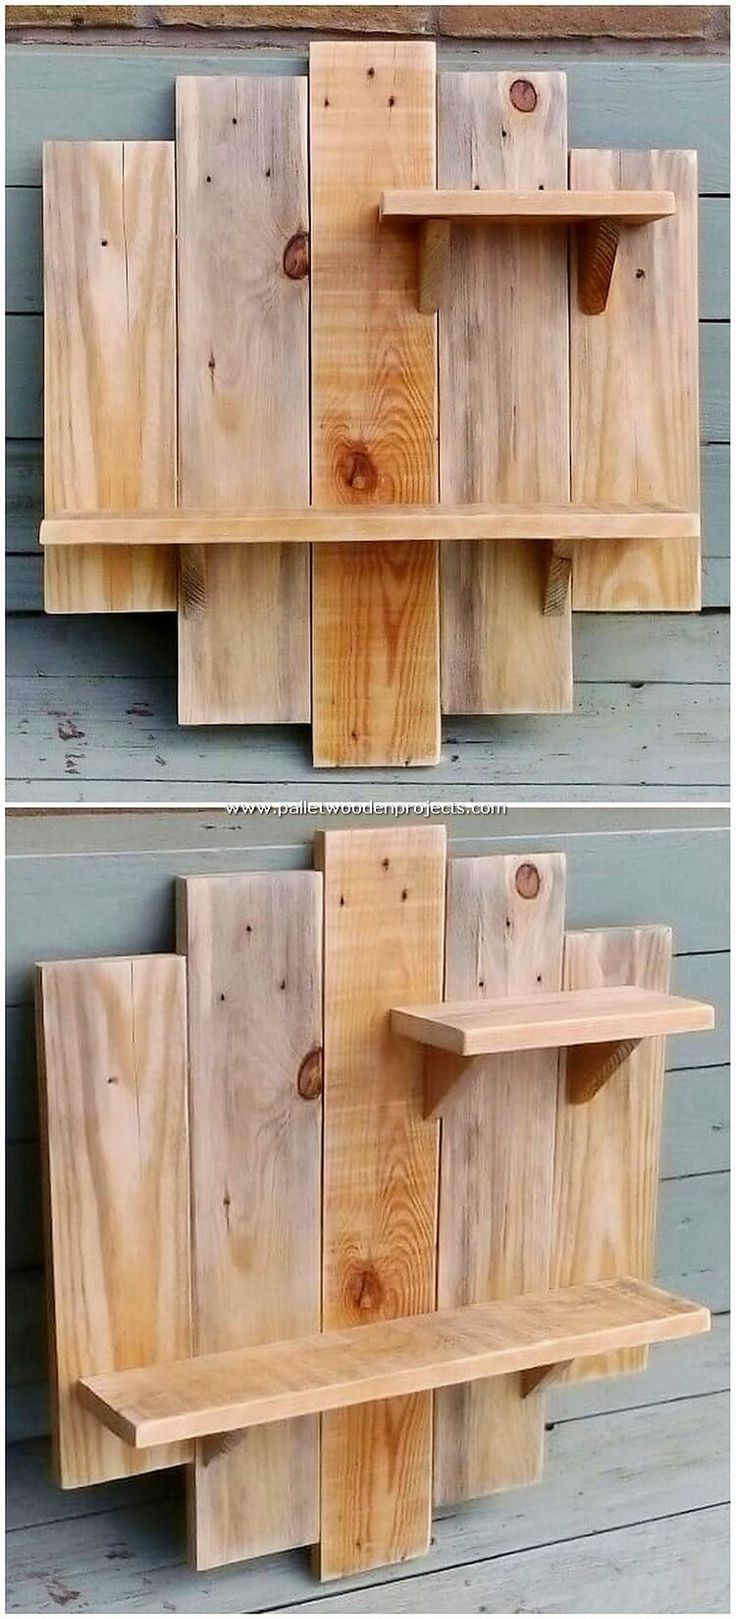 Incredible Do It Yourself Pallet Projects and Plan…